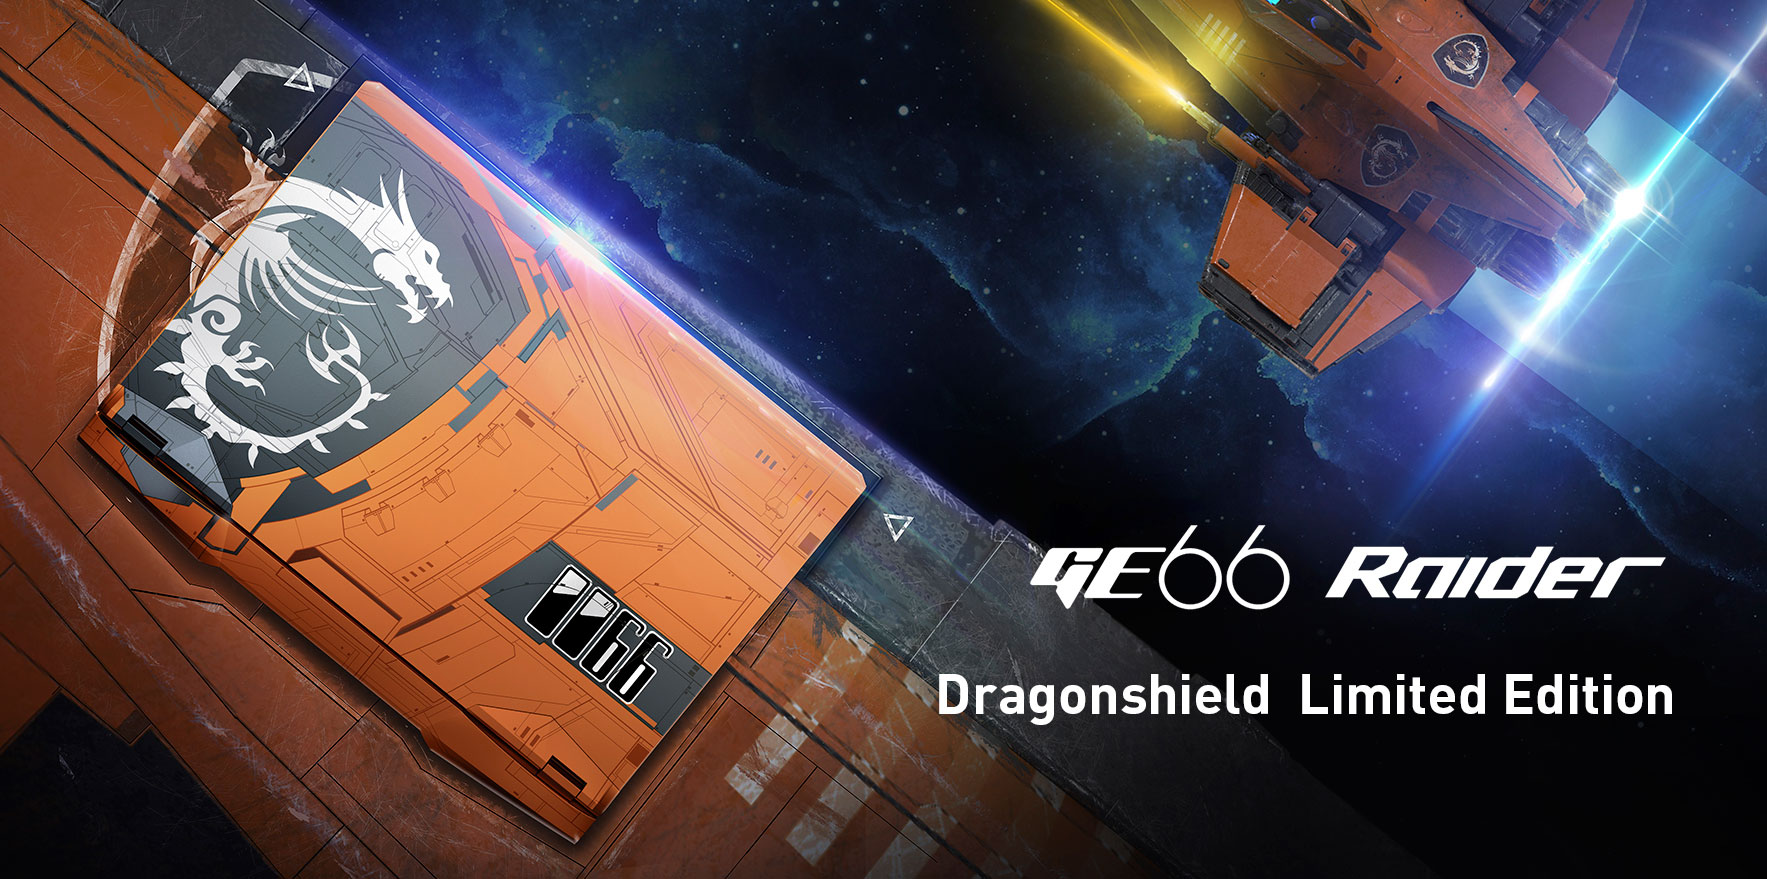 DragonShield Limited Edition